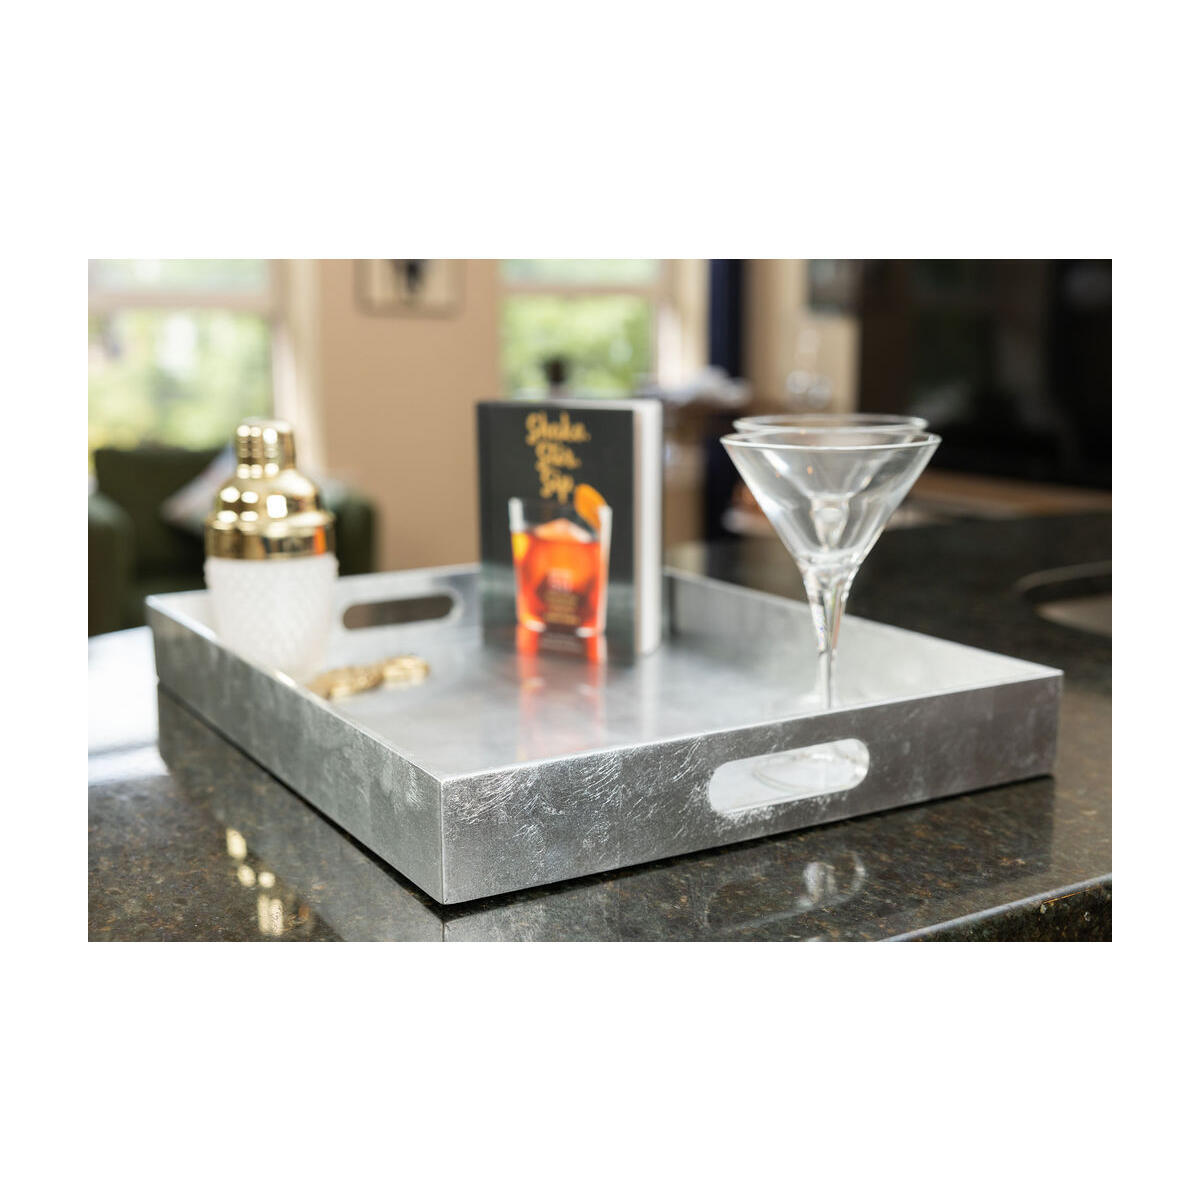 Concord Signature Decorative Tray, Coffee Table Tray - Silver, Large, Rectangular Serving Tray, 19.3x15